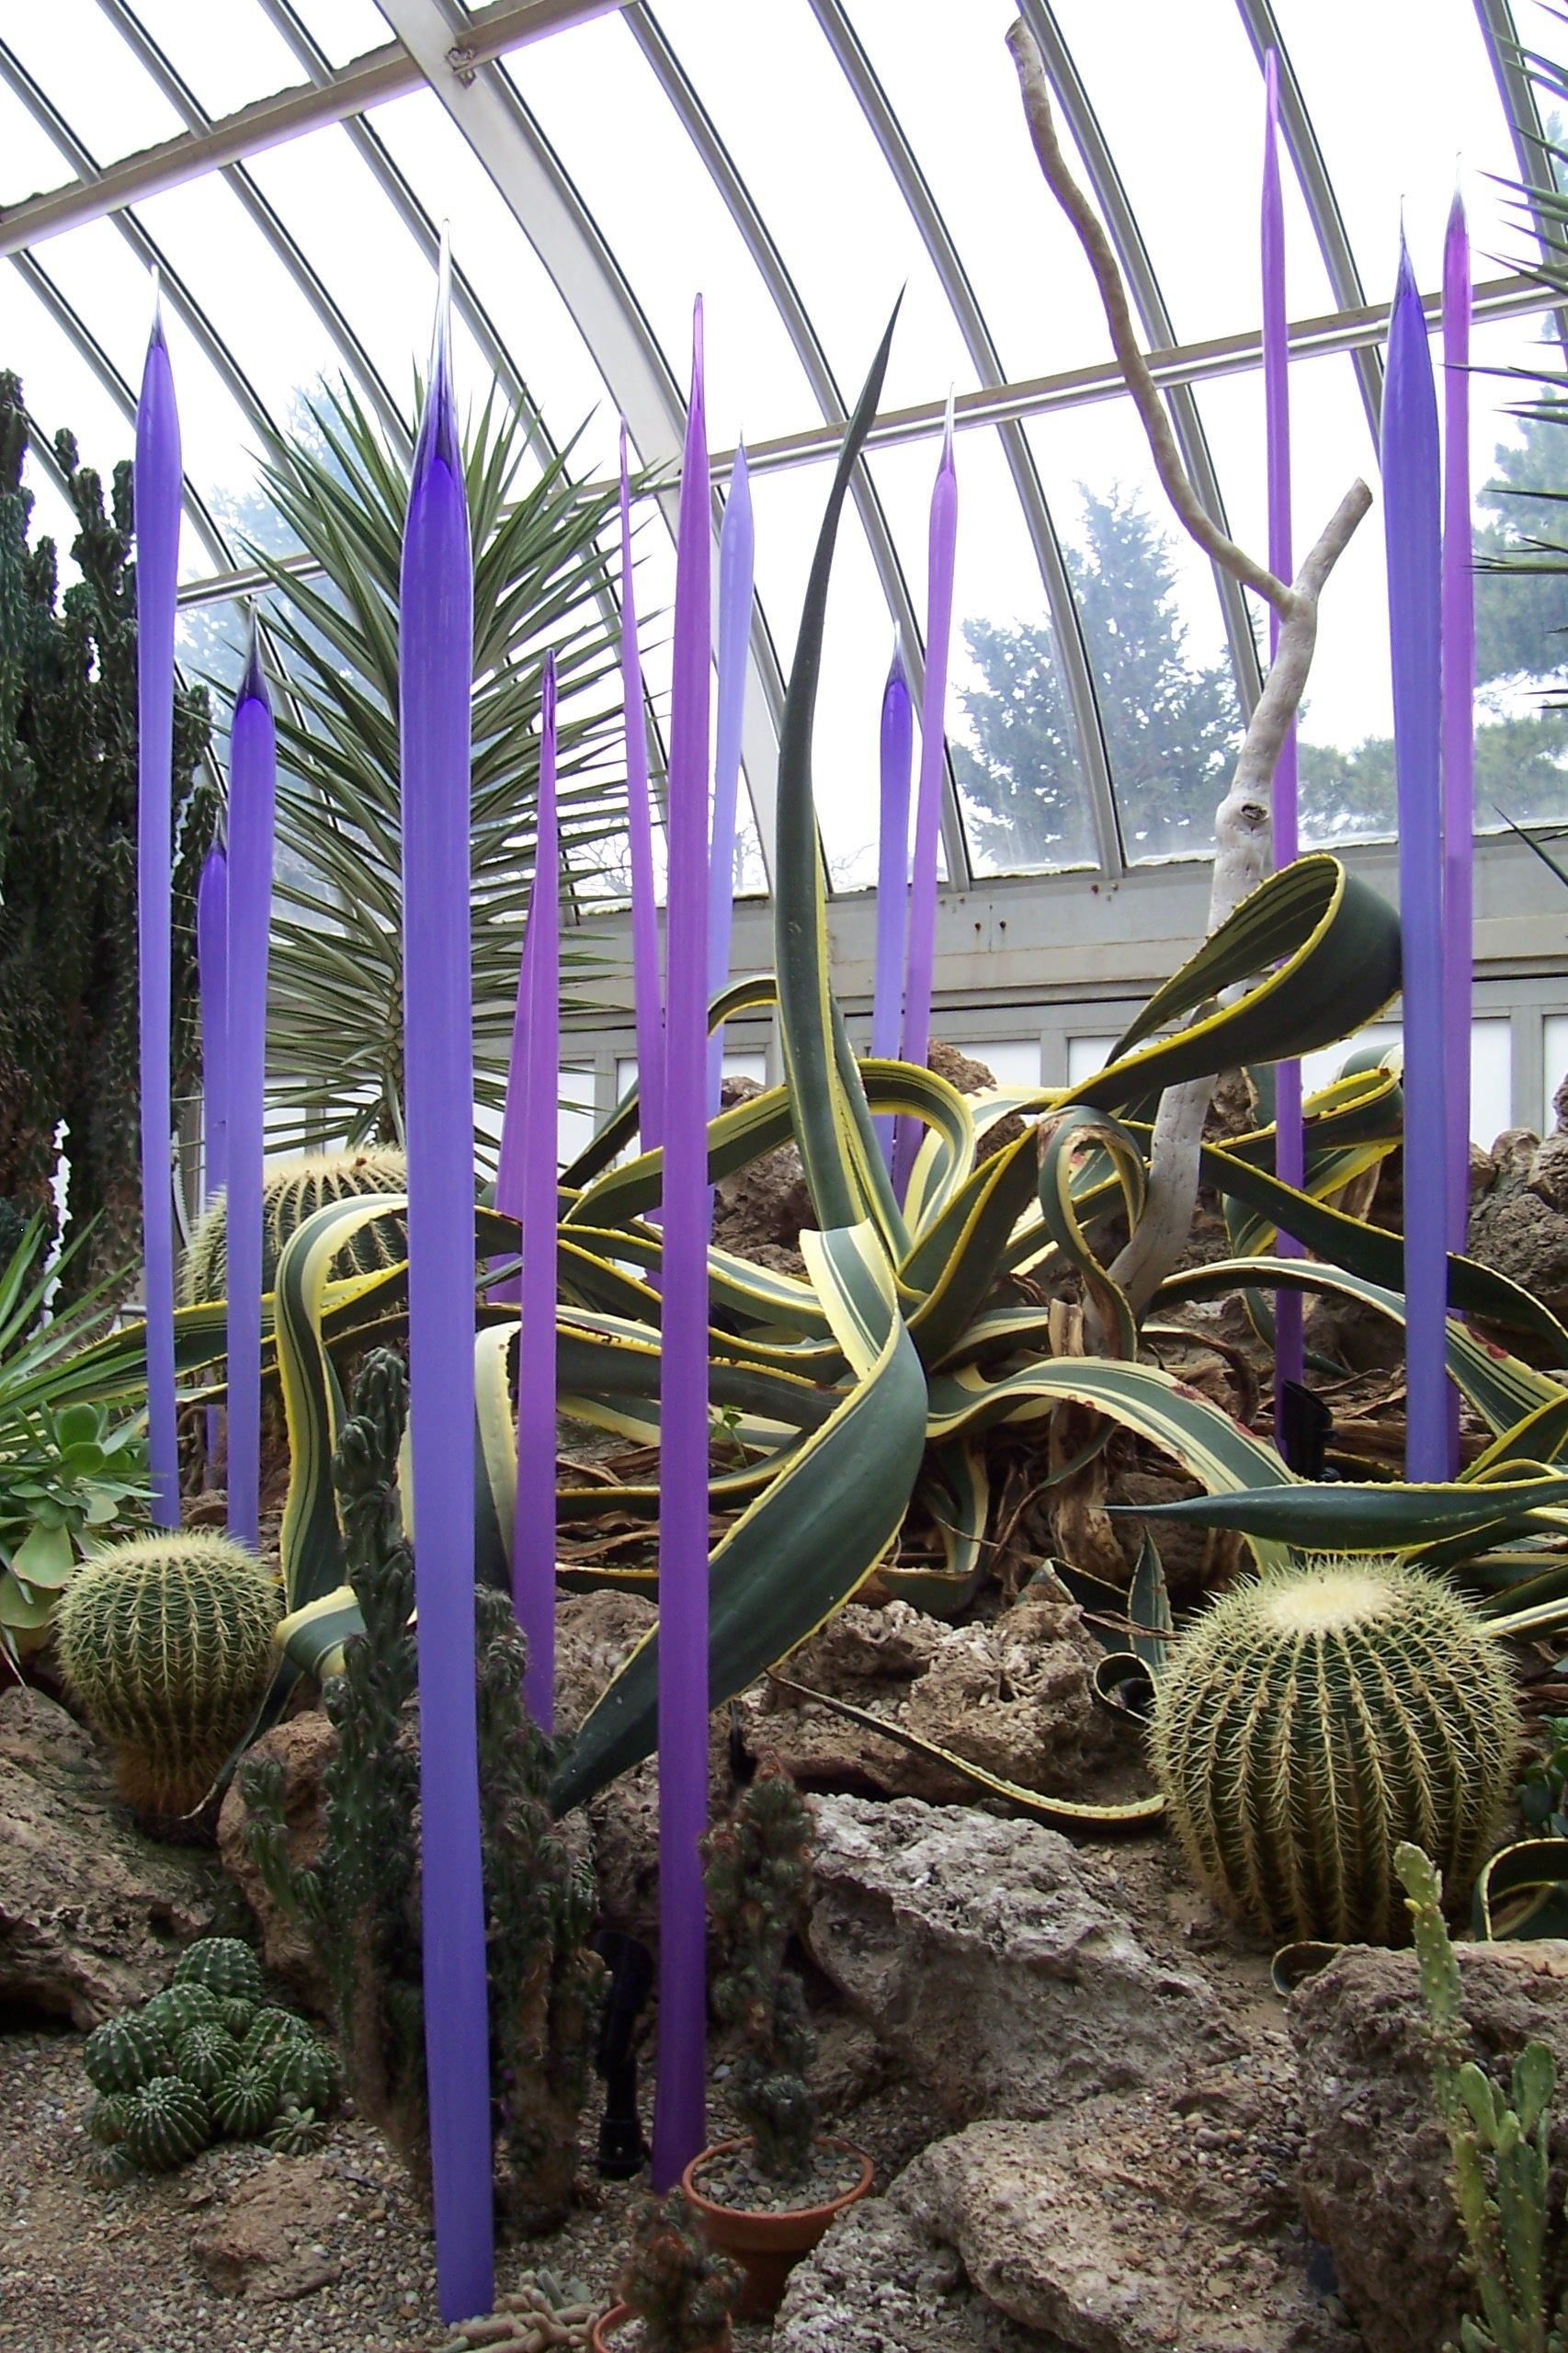 Chahuli glass show at phipps conservatory in 2008